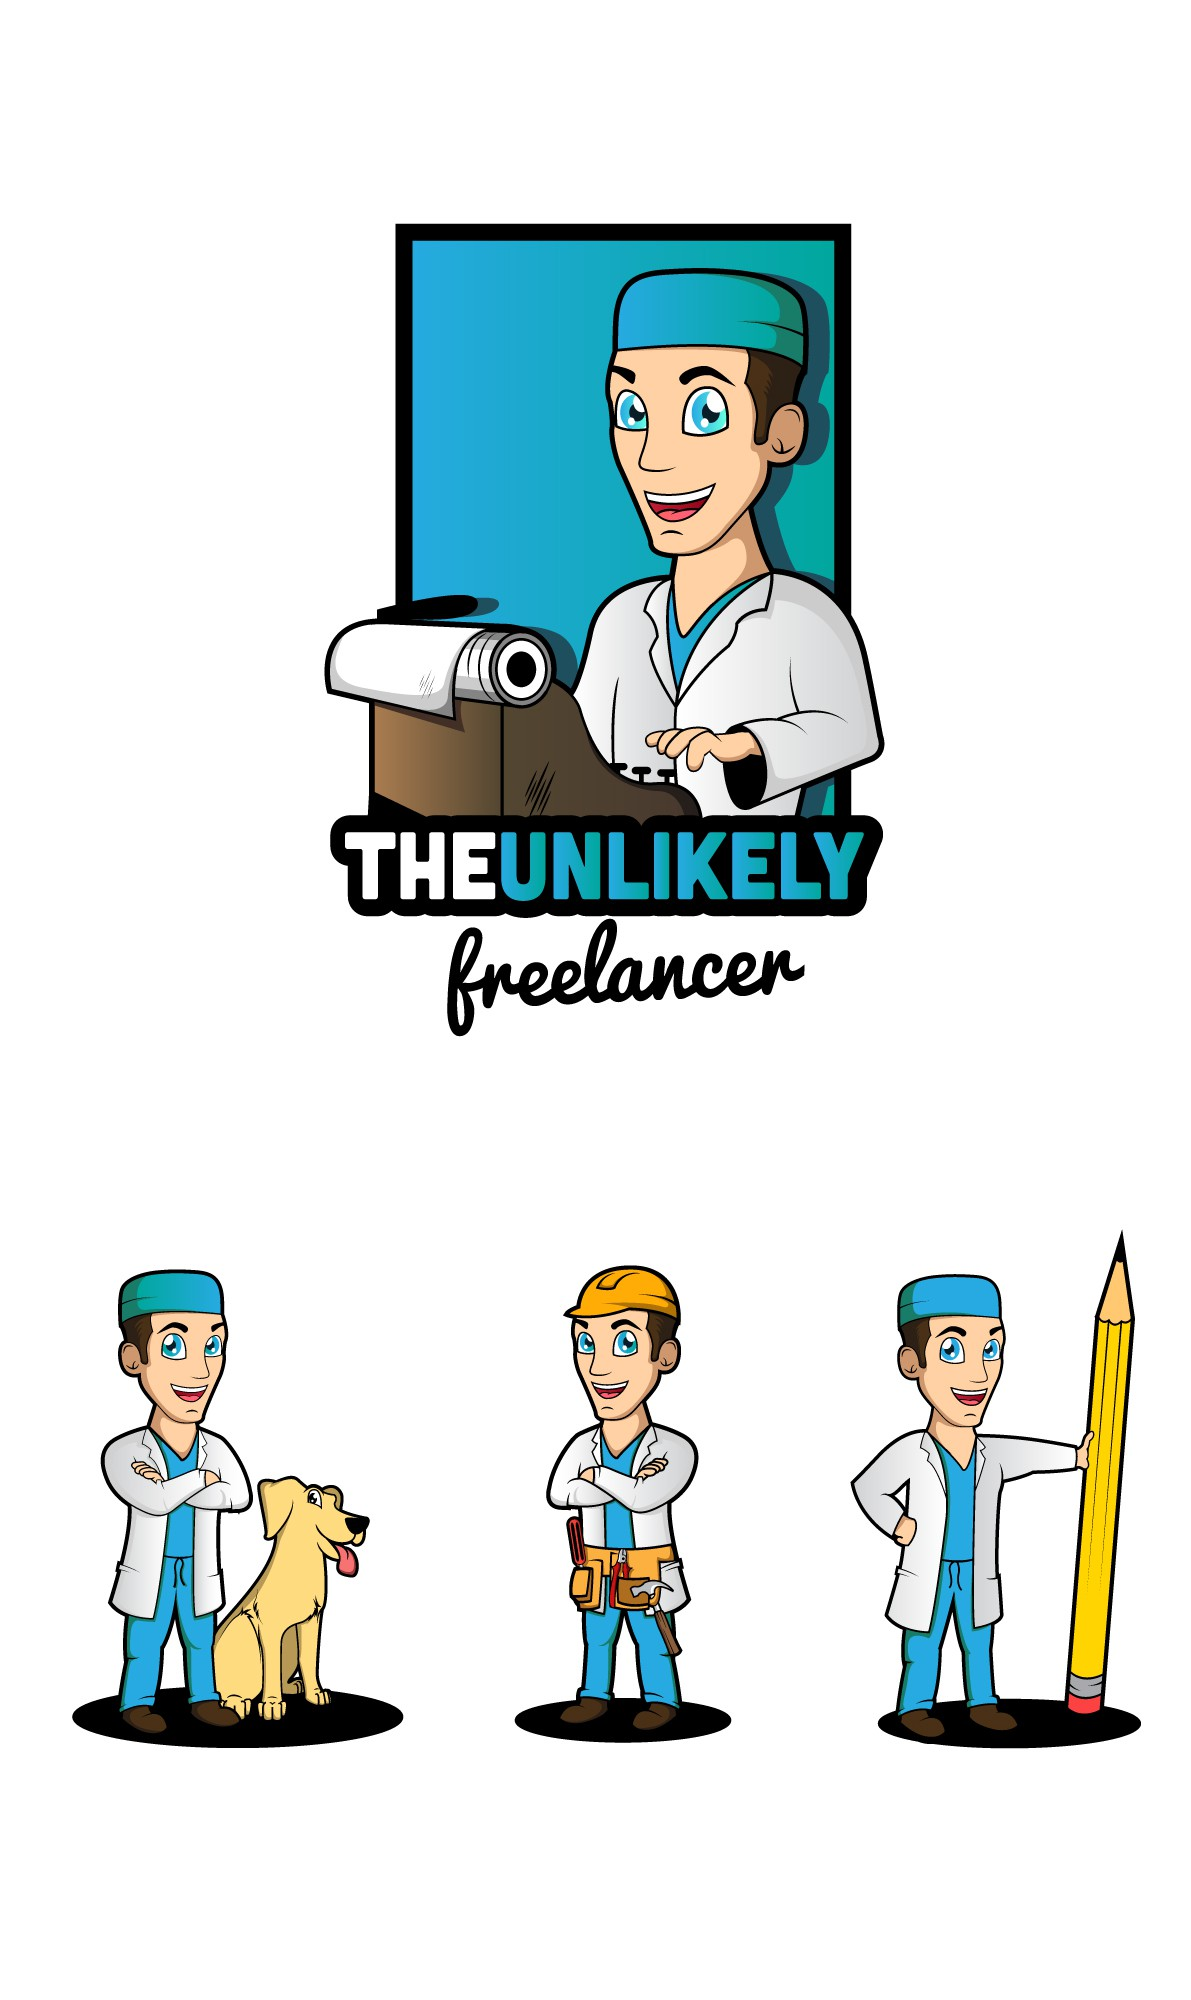 Create a logo for The Unlikely Freelancer - would love a medicine & writing motif!